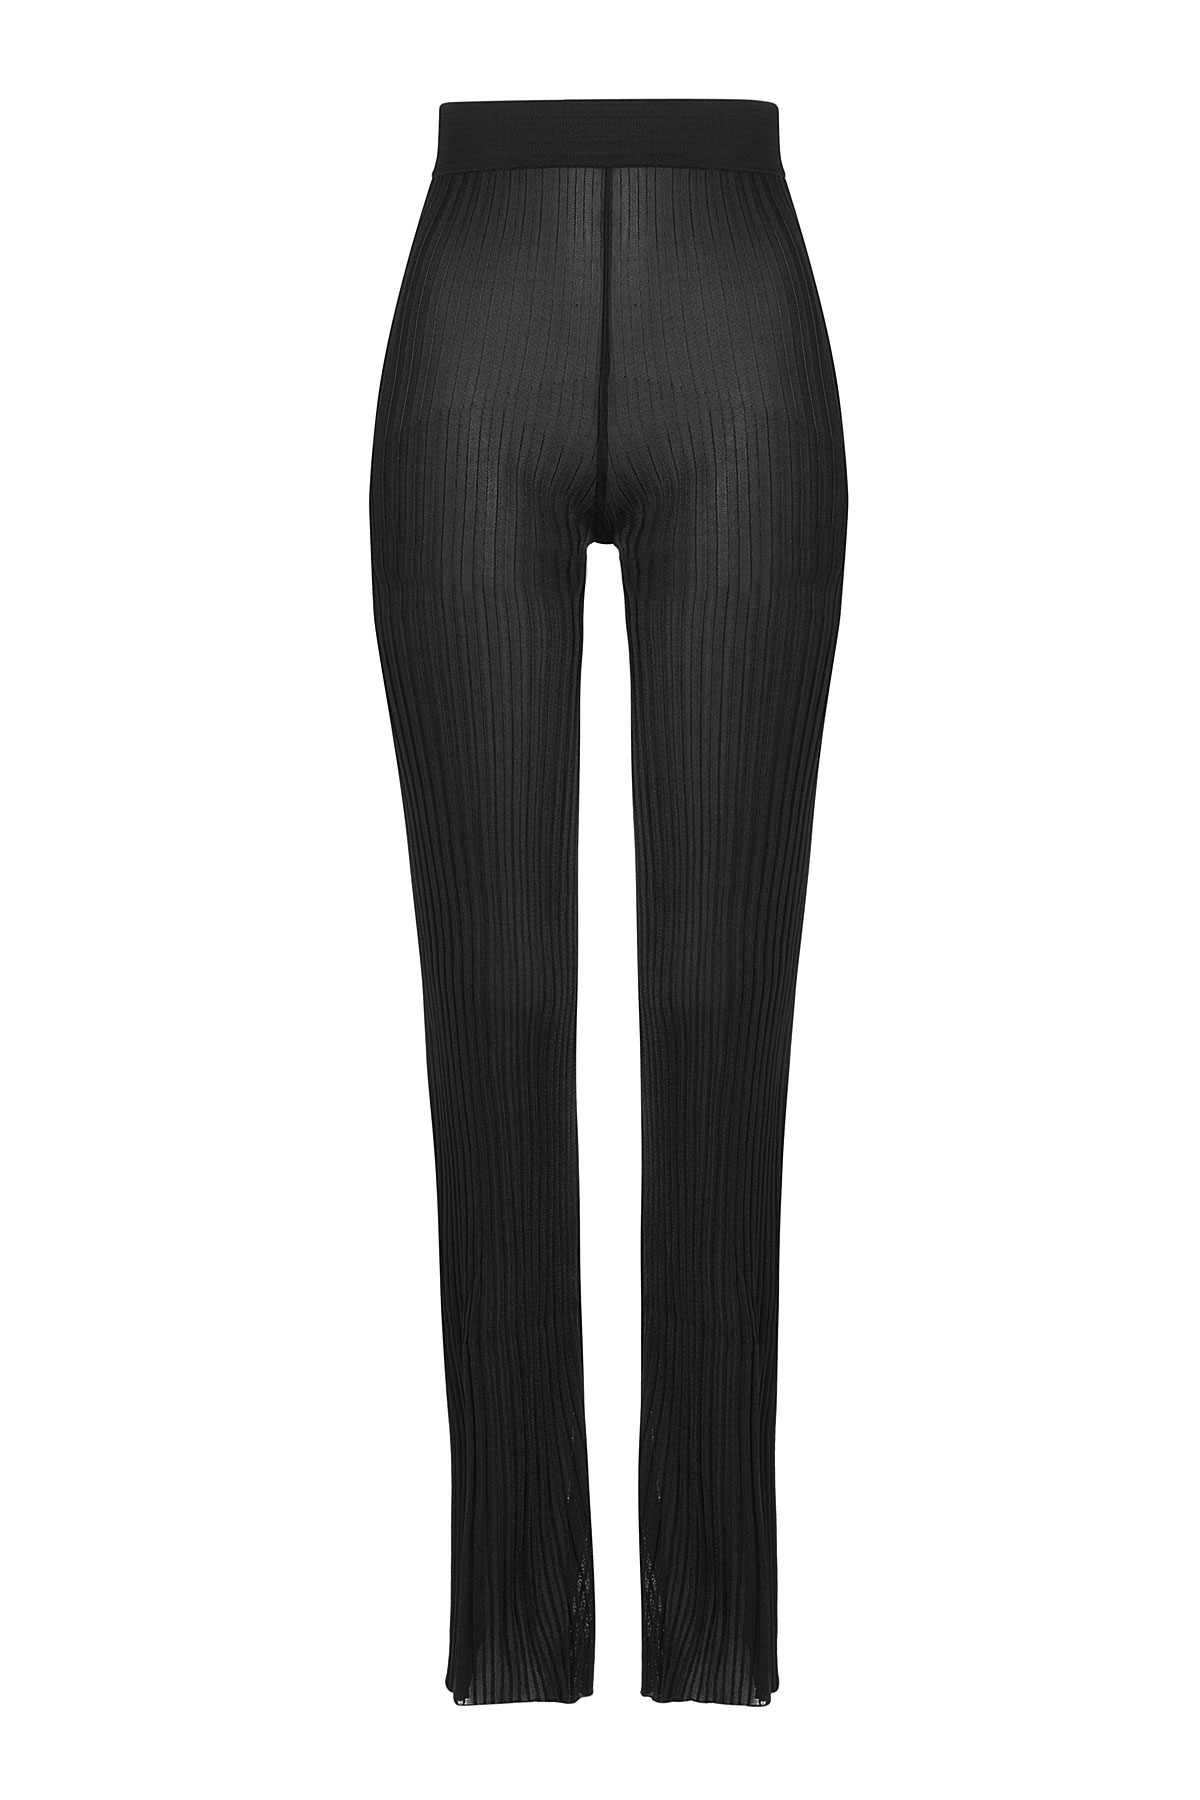 Balmain Knitted Flared Trousers in Black